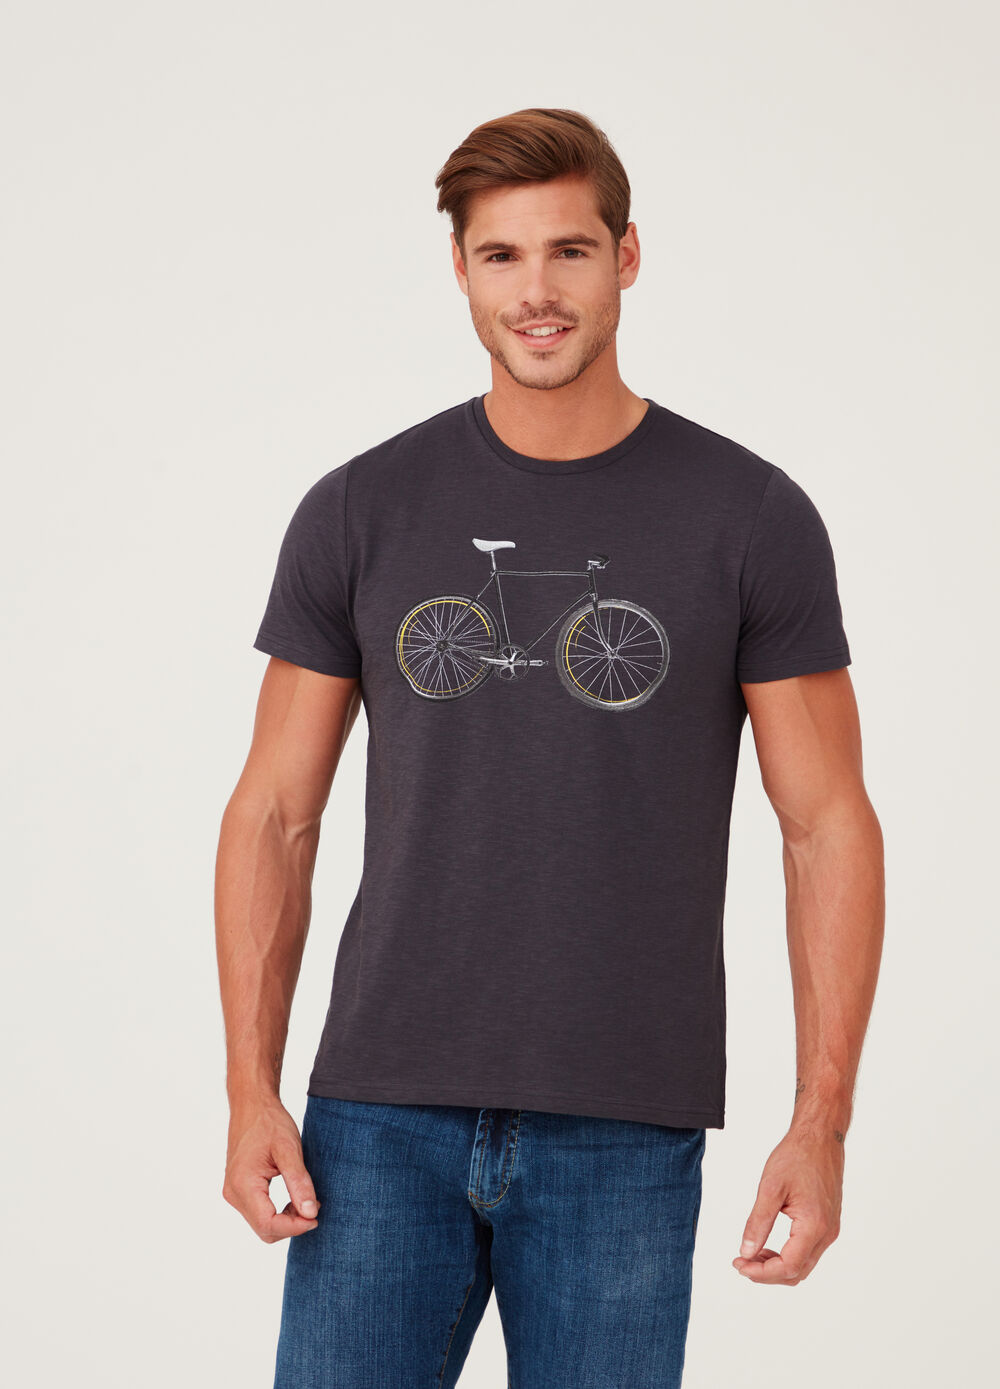 100% cotton T-shirt with round neck and print